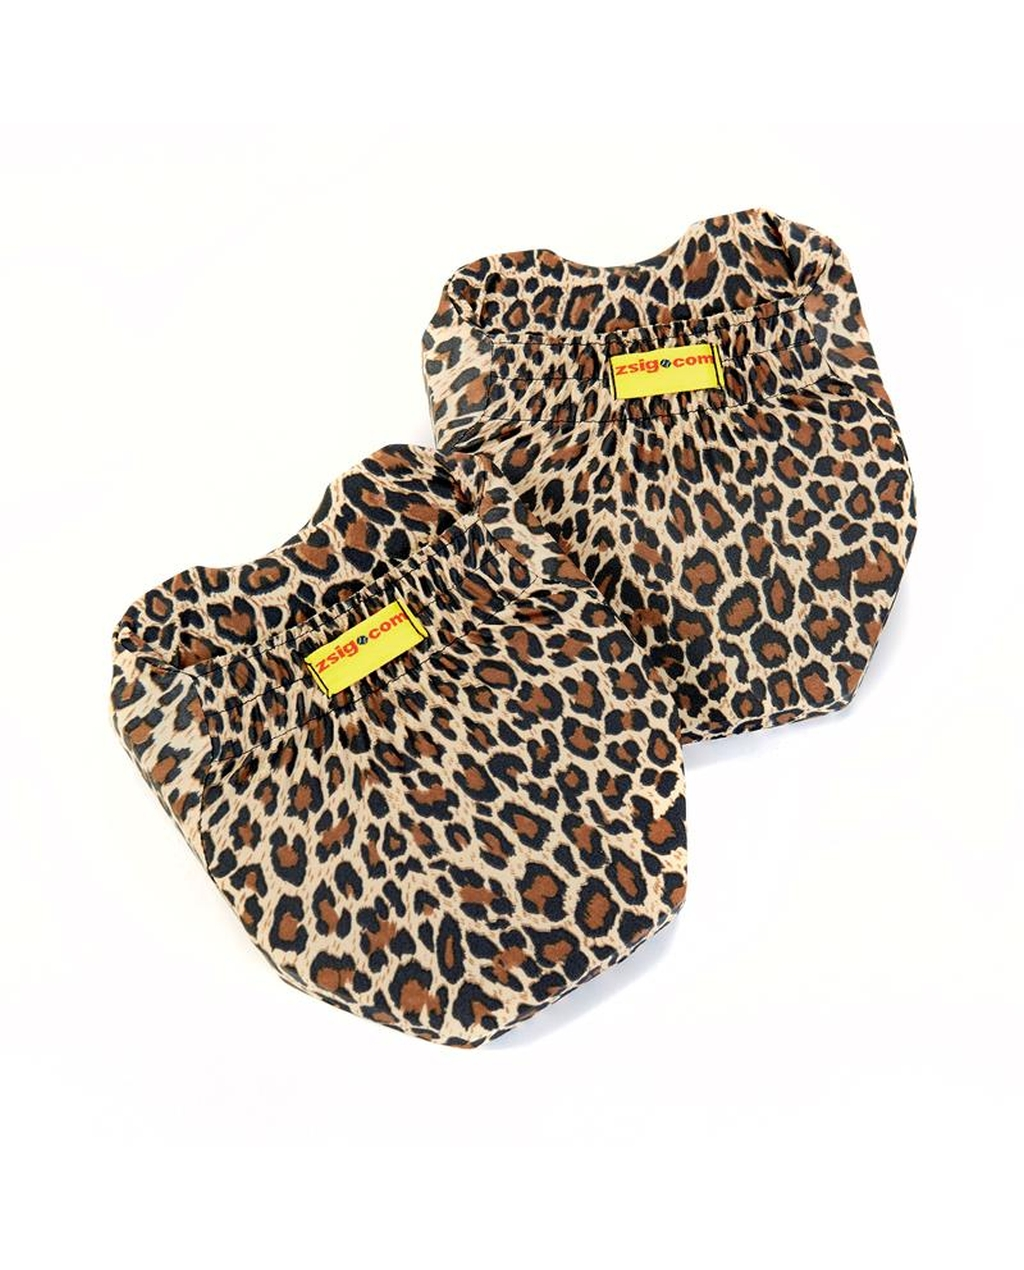 Leopard Paws 4 x 4 pairs